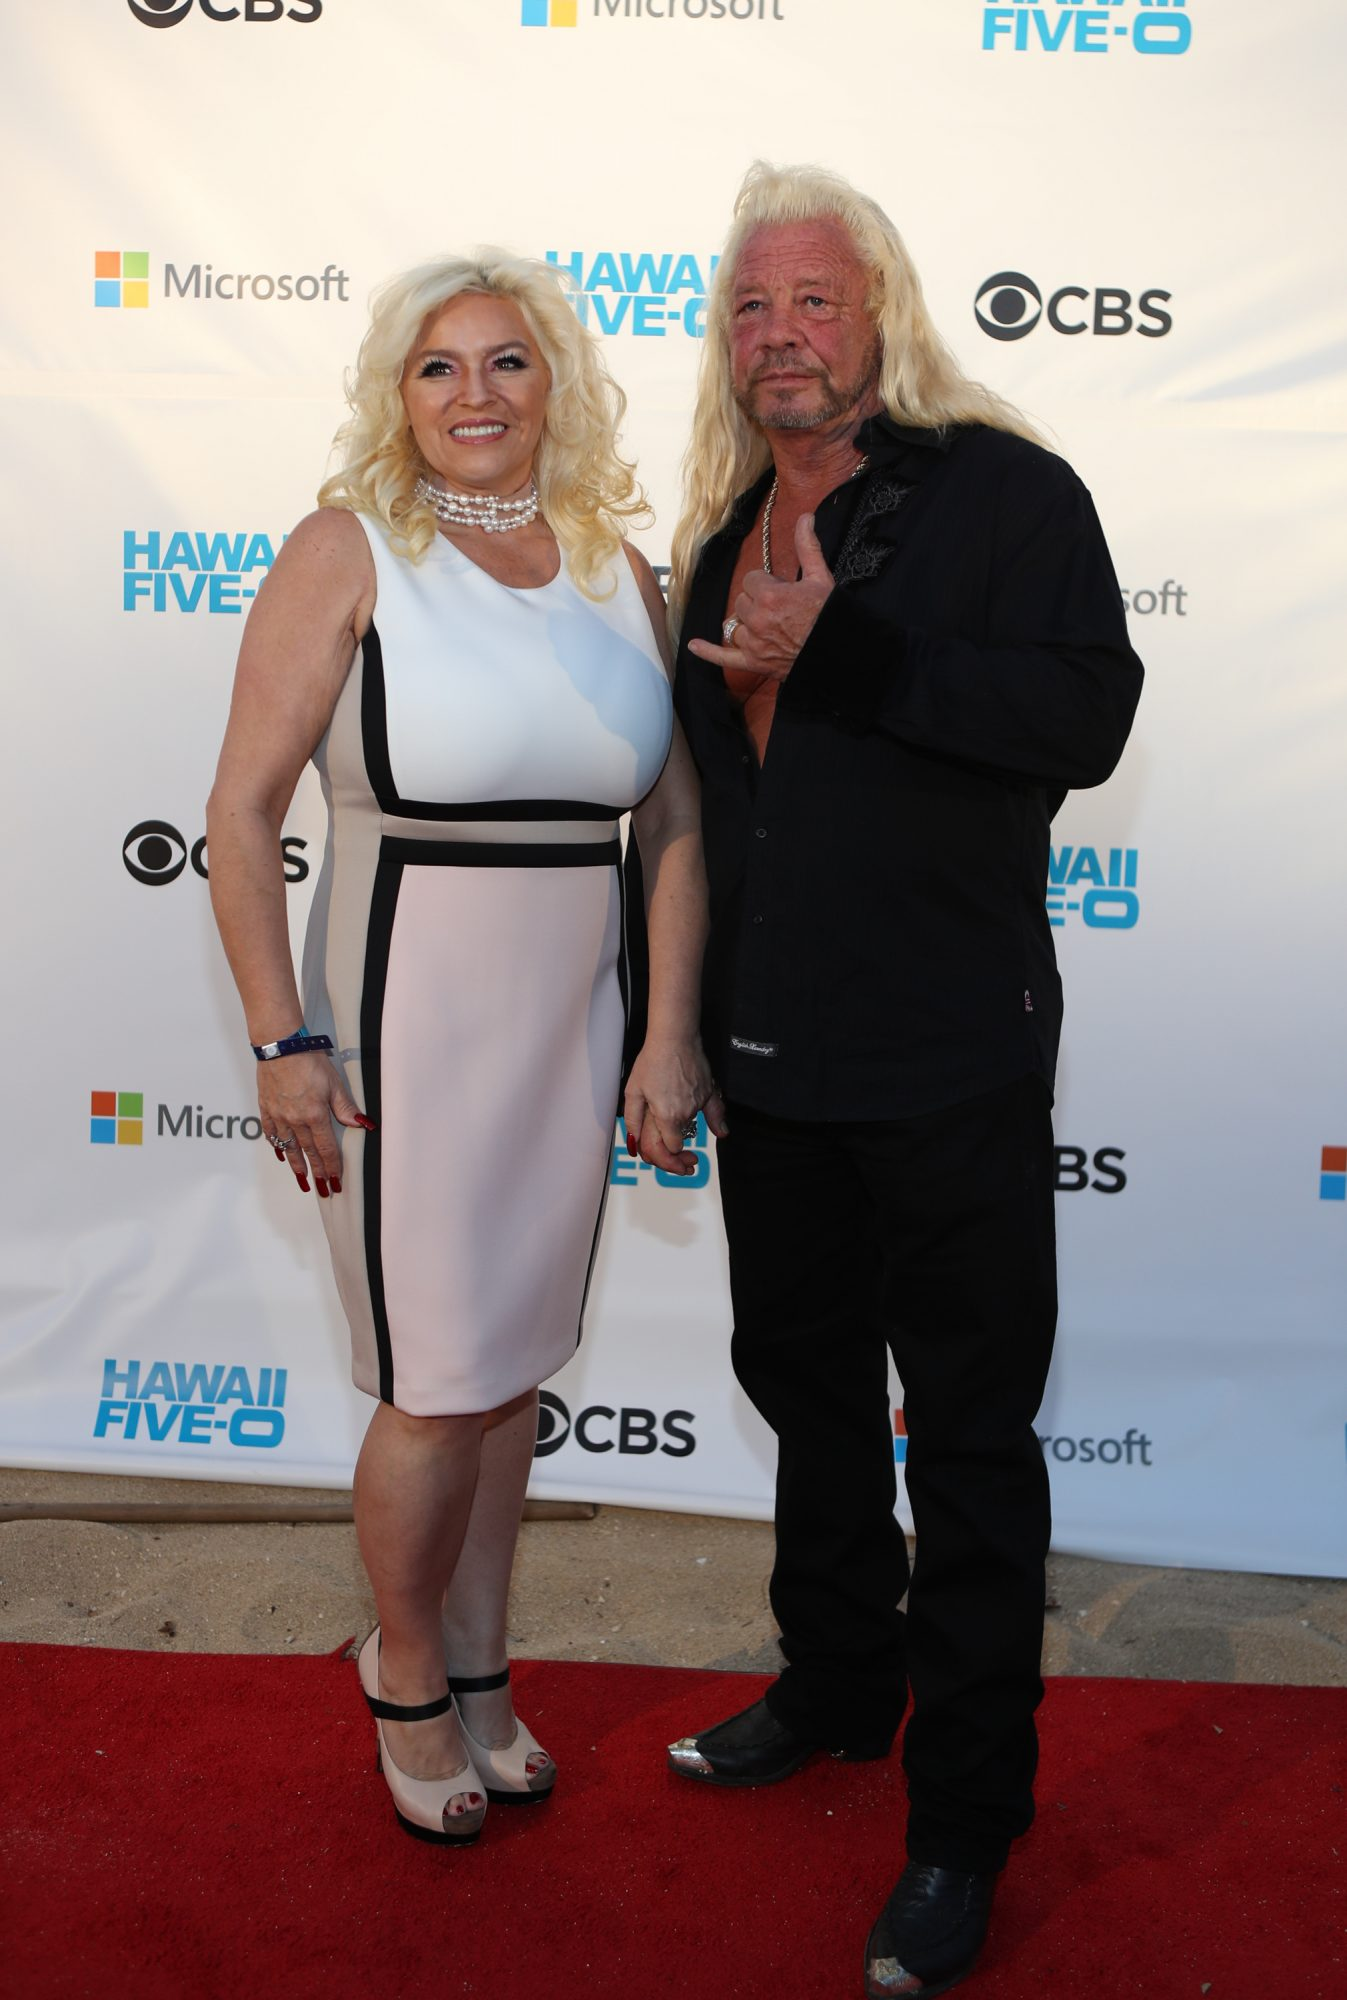 Duane 'Dog the Bounty Hunter' Chapman Hospitalized Nearly 3 Months After Wife's Death